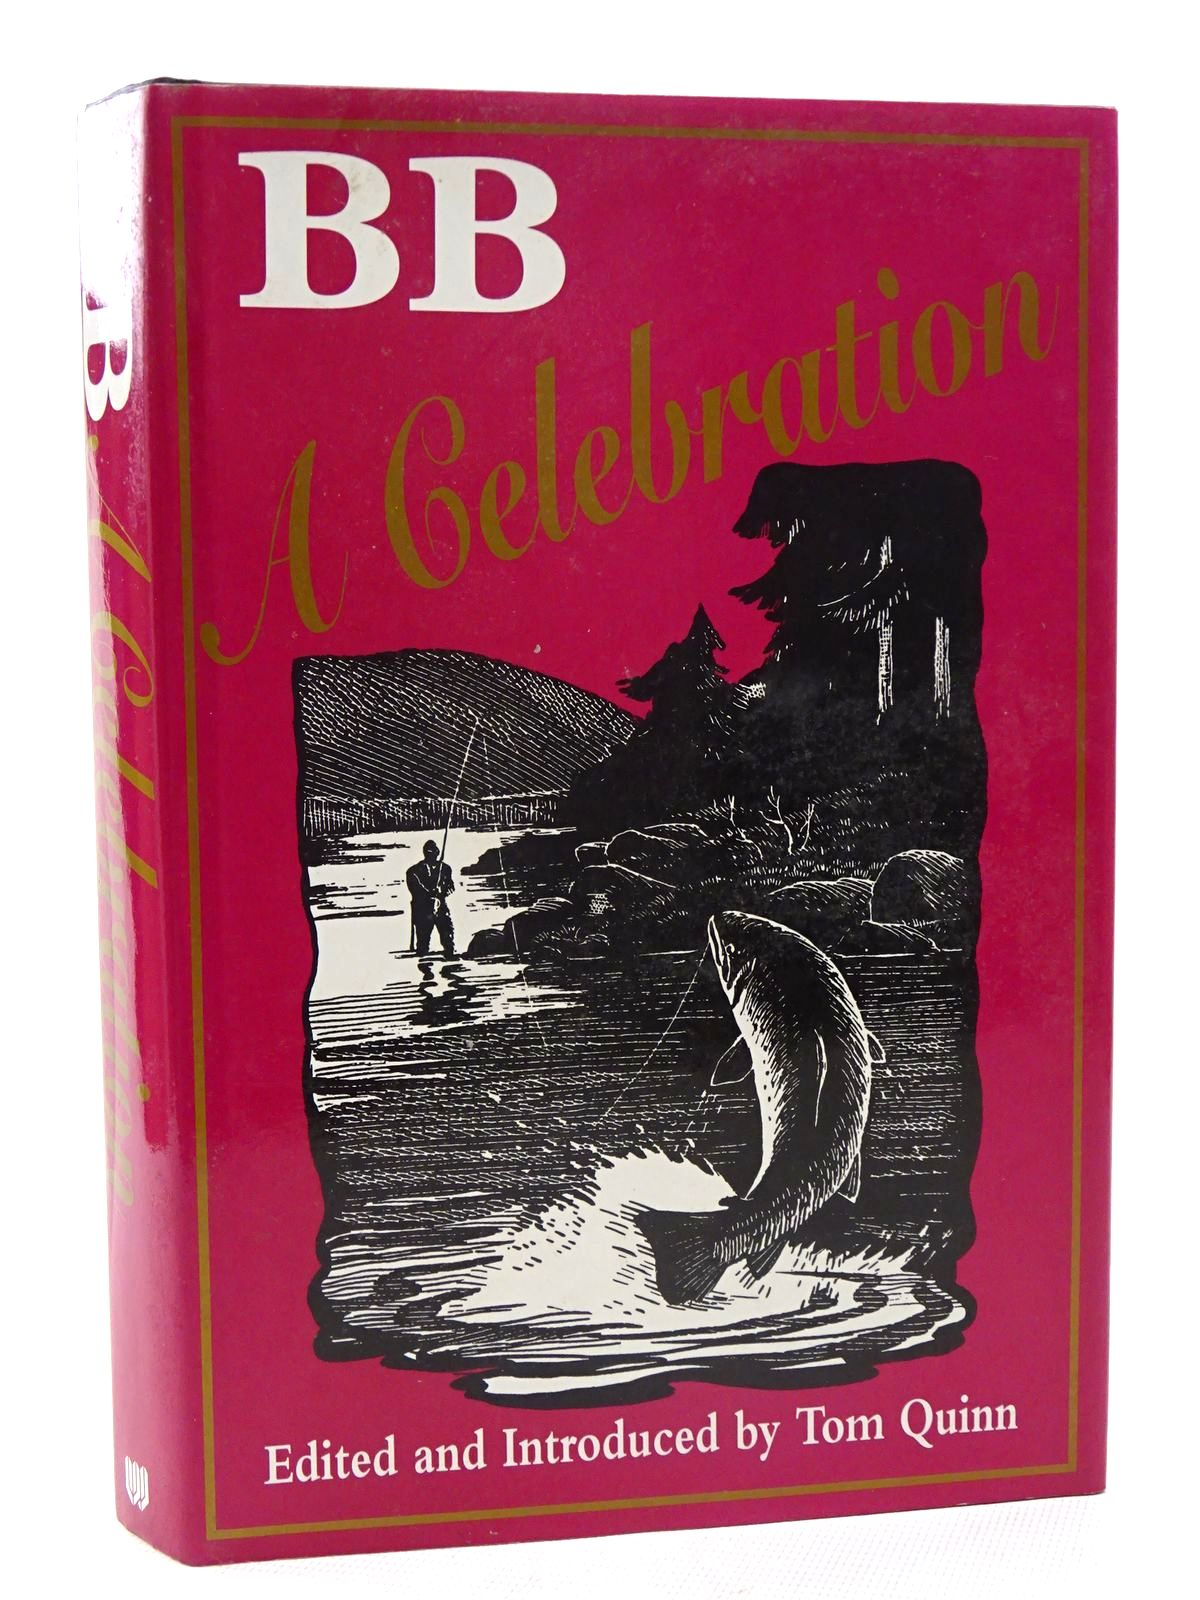 Photo of BB A CELEBRATION written by BB,  Quinn, Tom illustrated by BB,  published by Wharncliffe Publishing Limited (STOCK CODE: 2126000)  for sale by Stella & Rose's Books